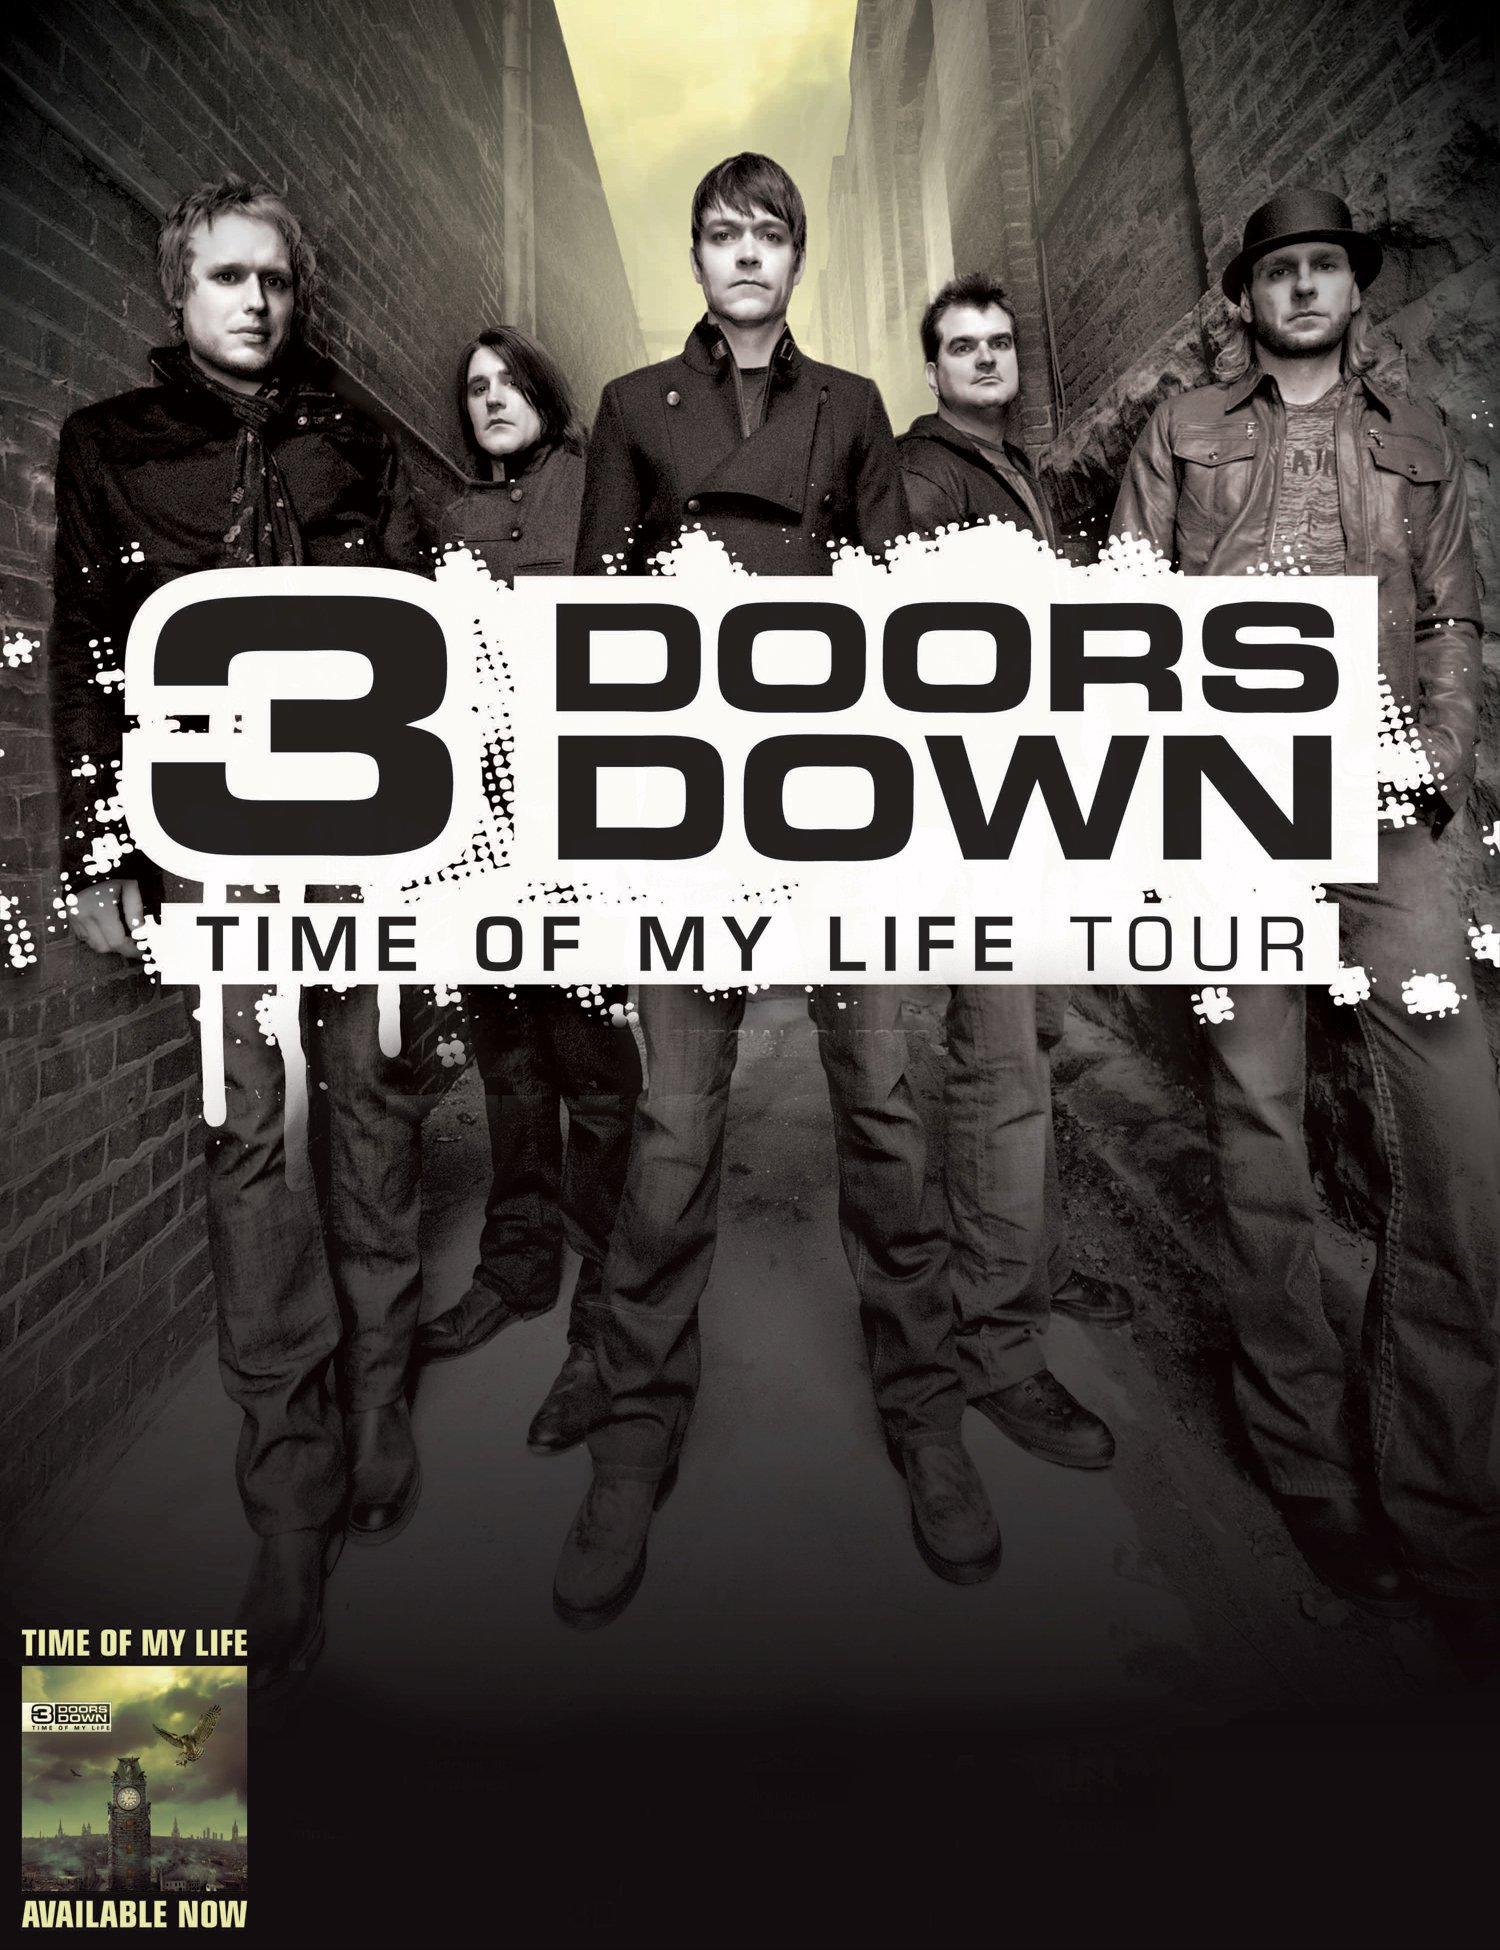 3 Doors Down will be performing at Universal Studios ...  sc 1 st  Orlando Local Guide & 3 Doors Down Orlando Concert 2012 at Universal Studios on June 16th ...